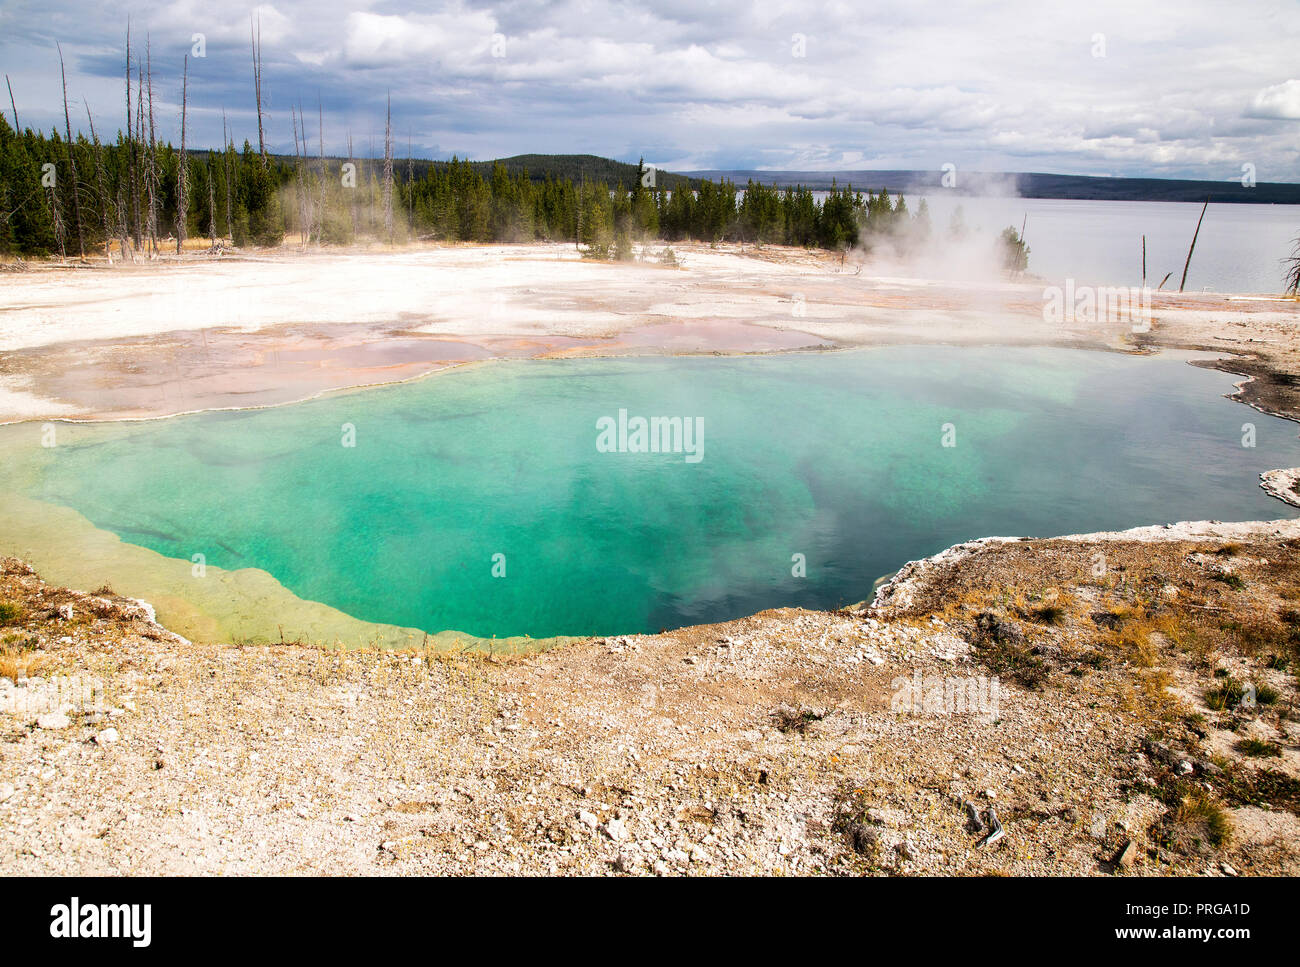 Small spring at the West Thumb Geyser Basin in Yellowstone National Park. - Stock Image